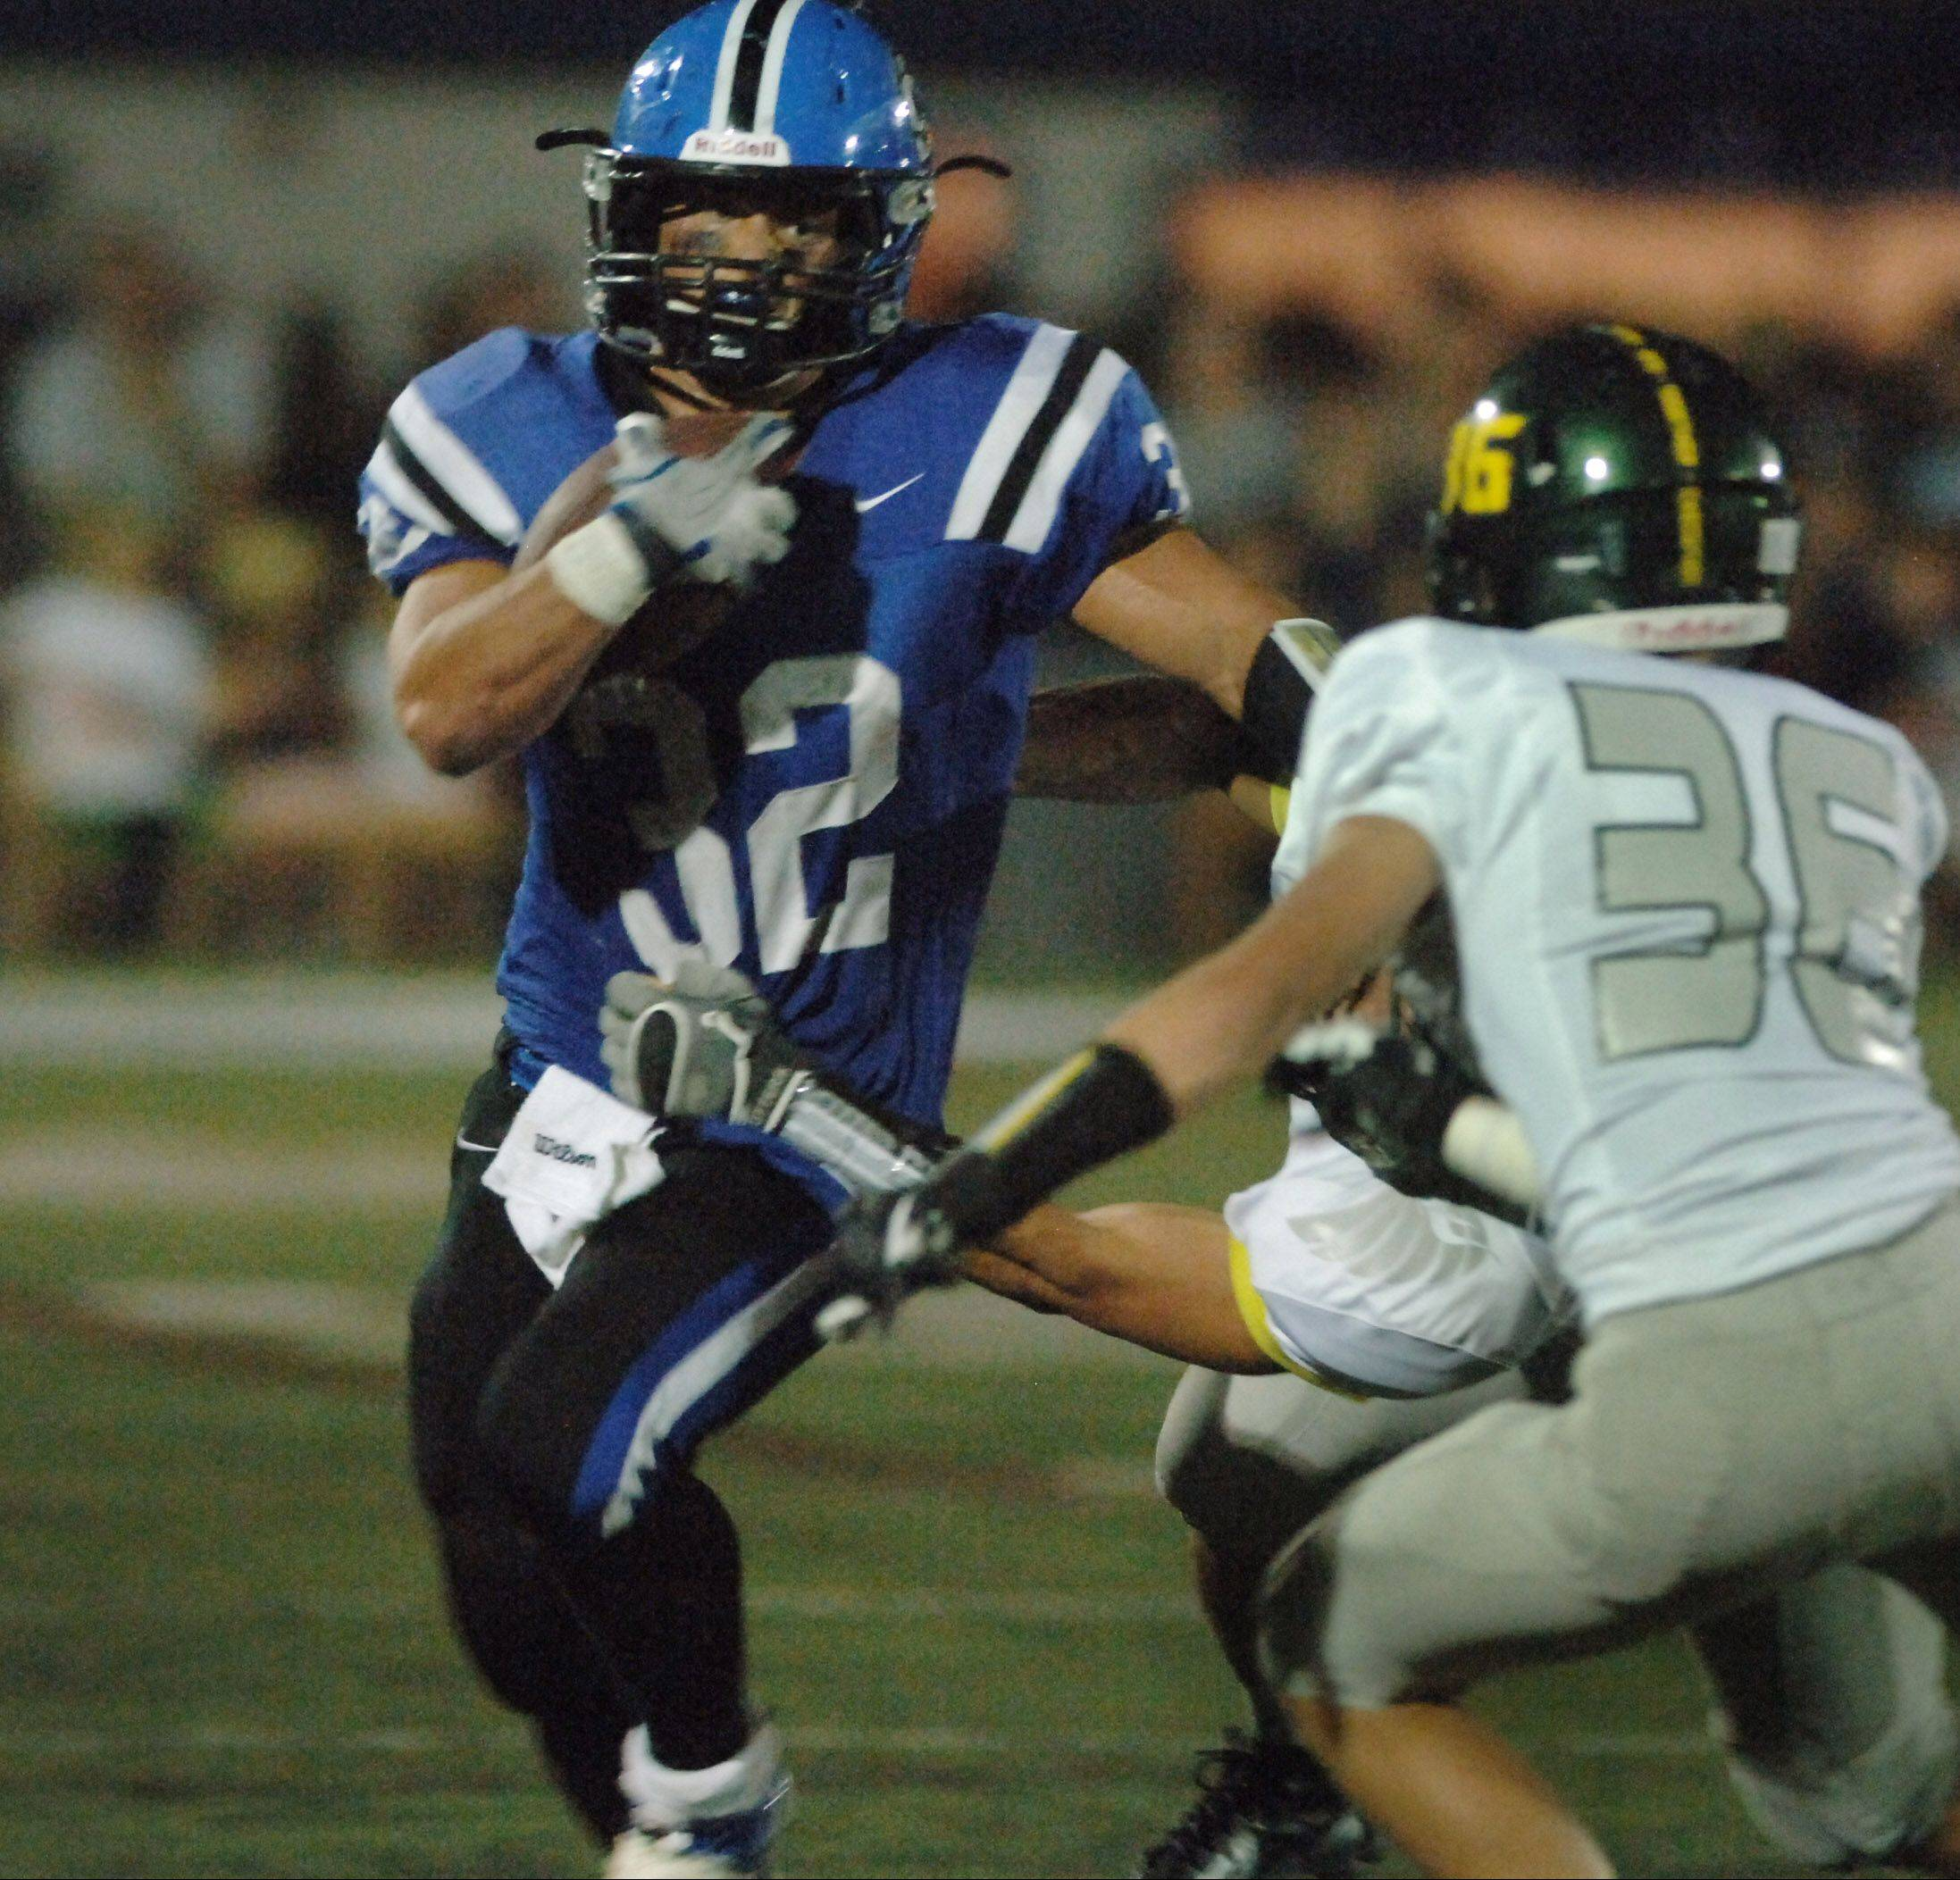 Lake Zurich's Connor Schrader looks for some running room against Fremd on Friday night in Lake Zurich.